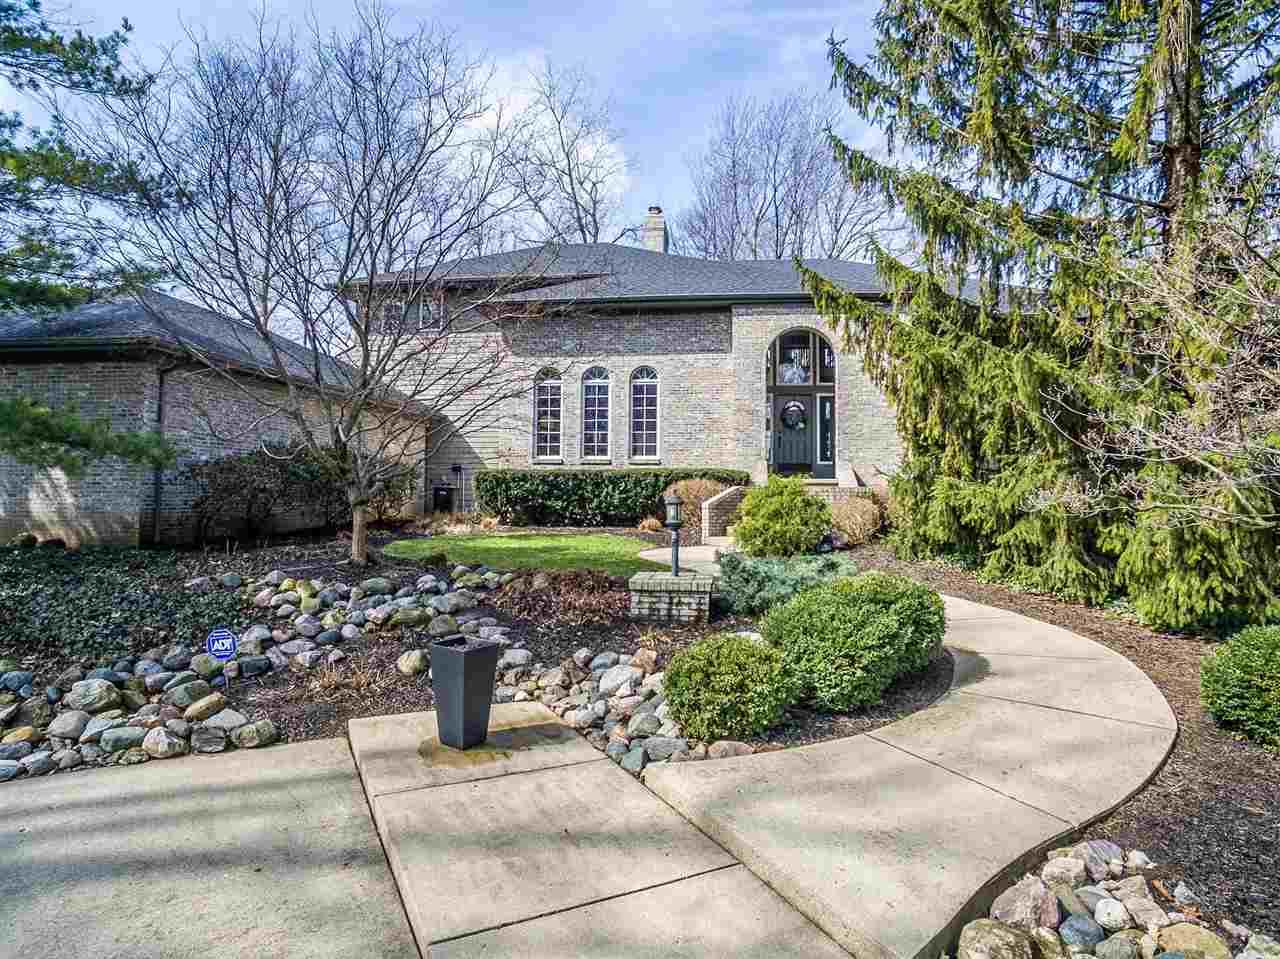 2016 Sycamore Hills, Fort Wayne, IN 46814